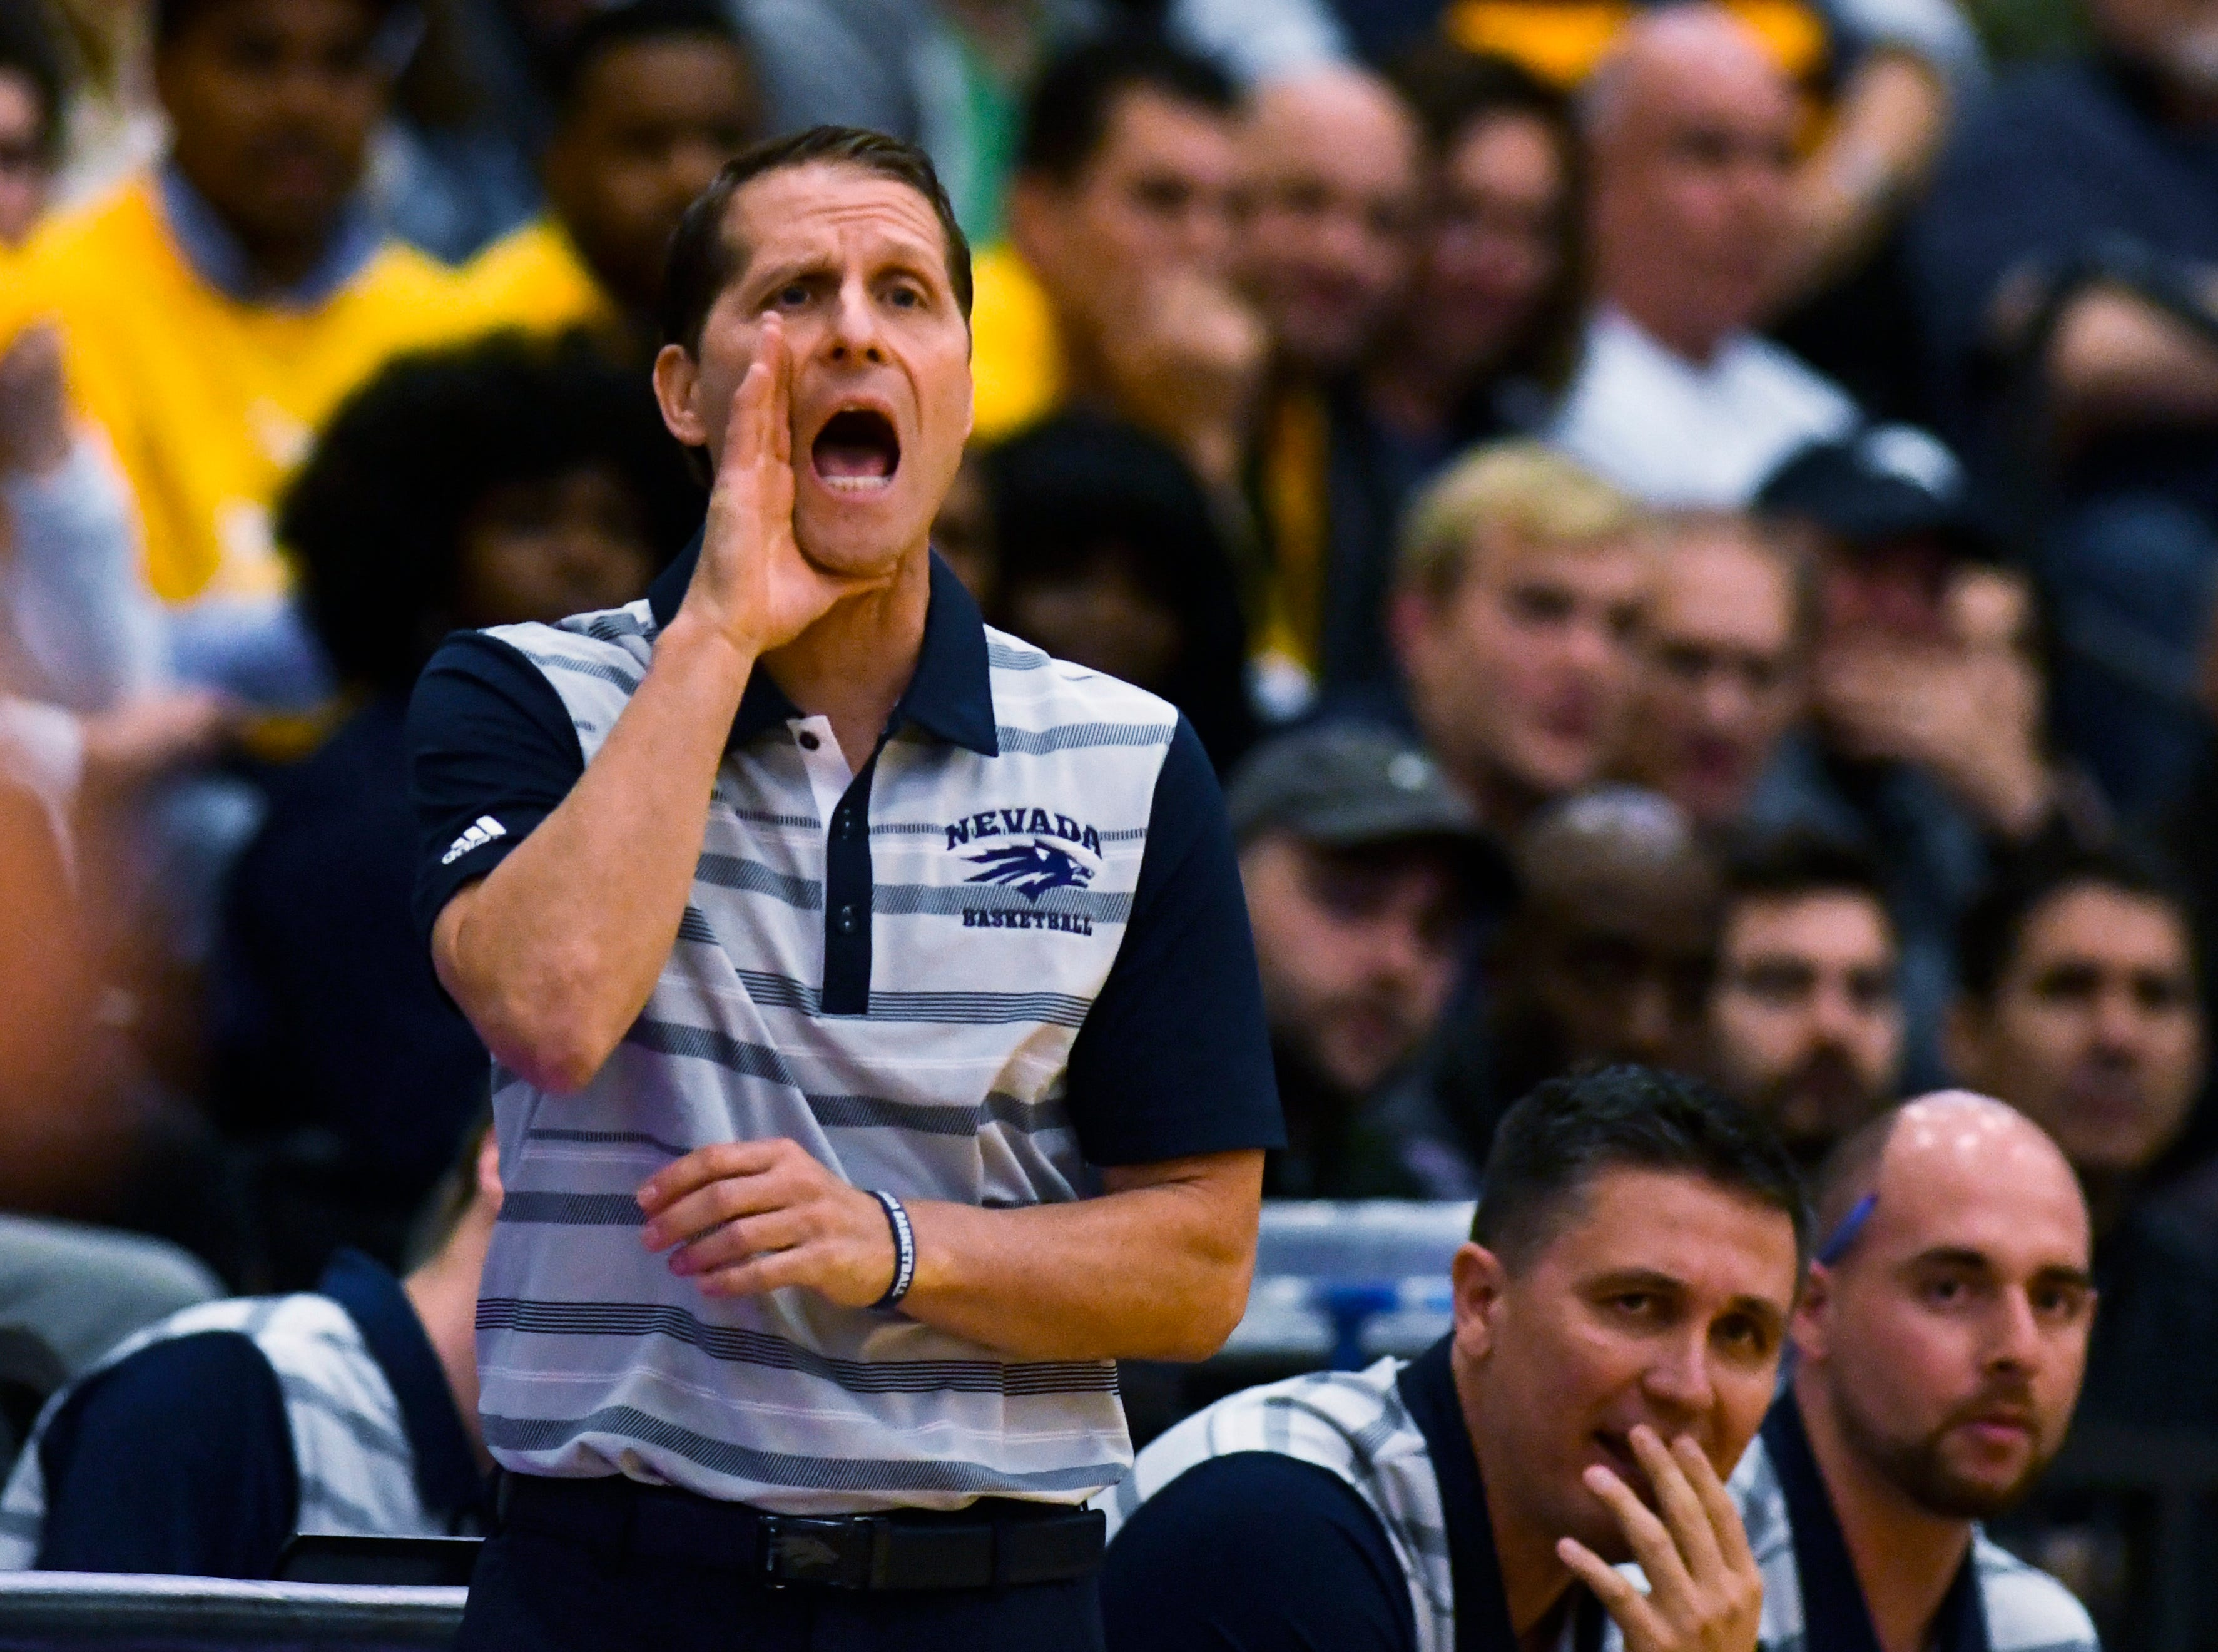 Nevada head coach Eric Musselman directs his team during the first half of an NCAA college basketball game against Loyola of Chicago in Chicago, Tuesday, Nov. 27, 2018. (AP Photo/Matt Marton)